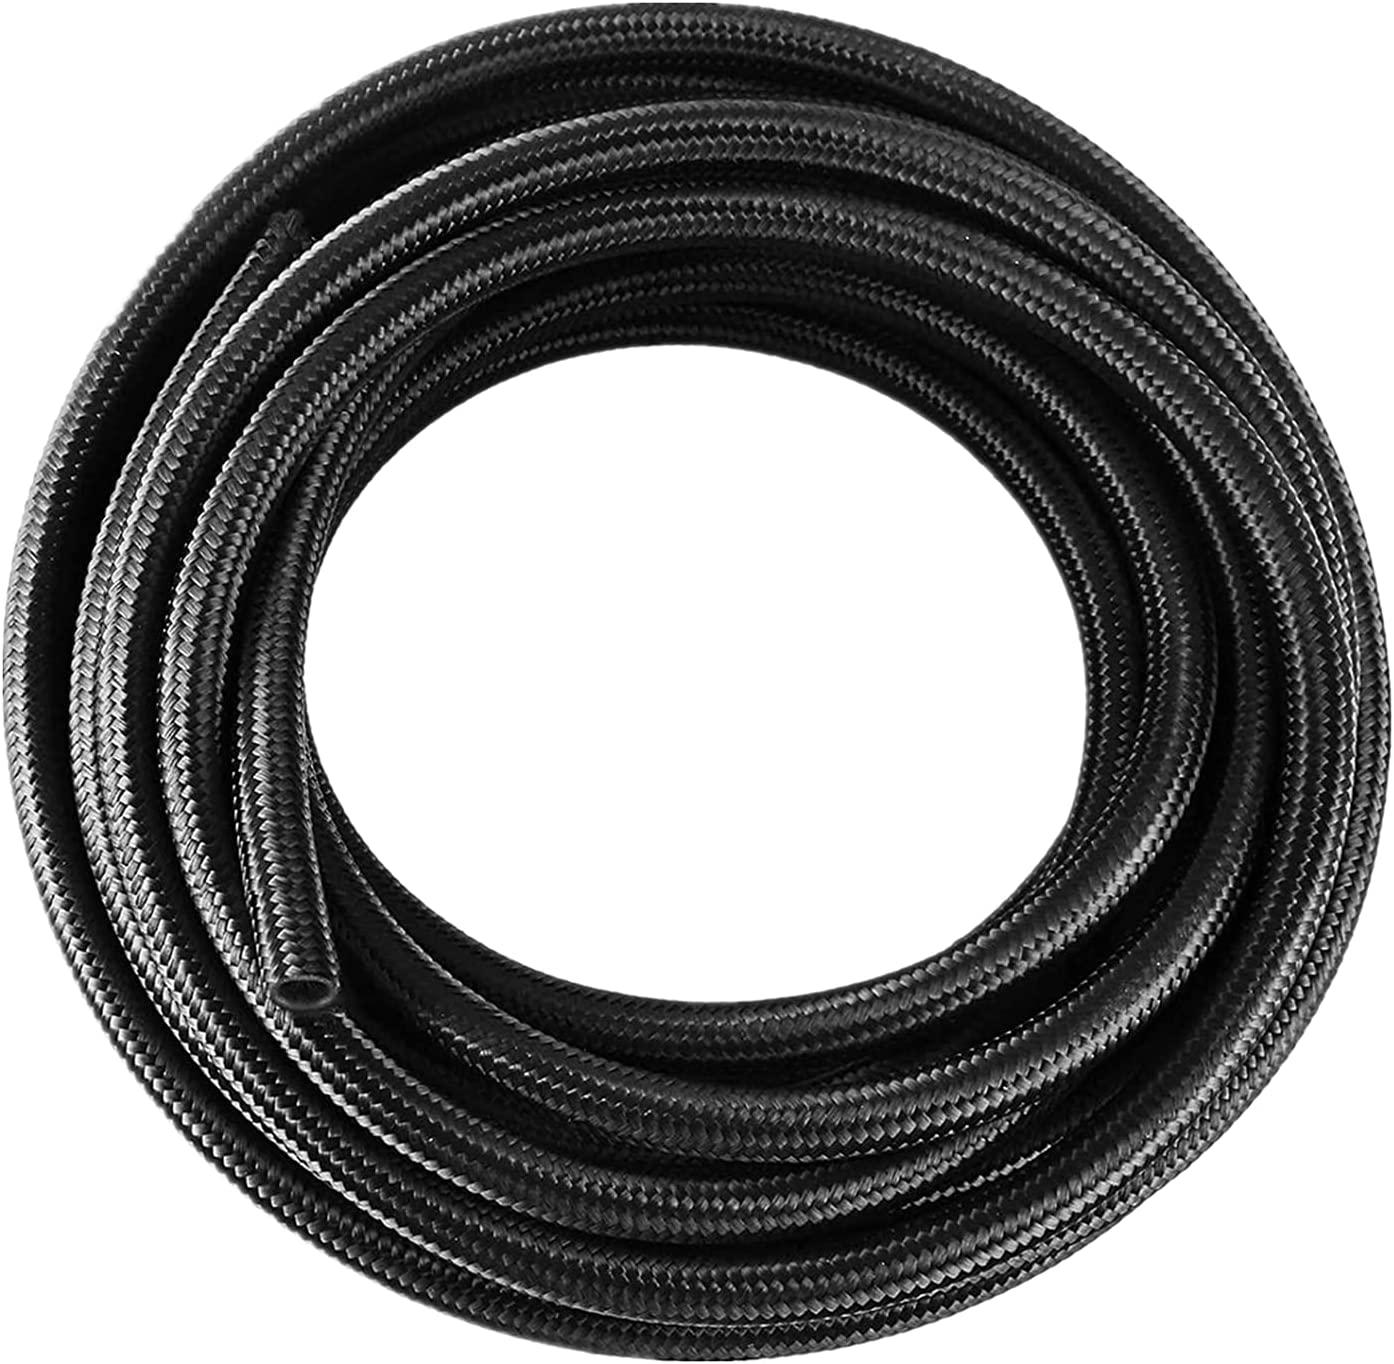 Limited time trial price Universal Oil Fuel Line Hose Direct store 10 8AN AN8 Steel Braid Ft Stainless